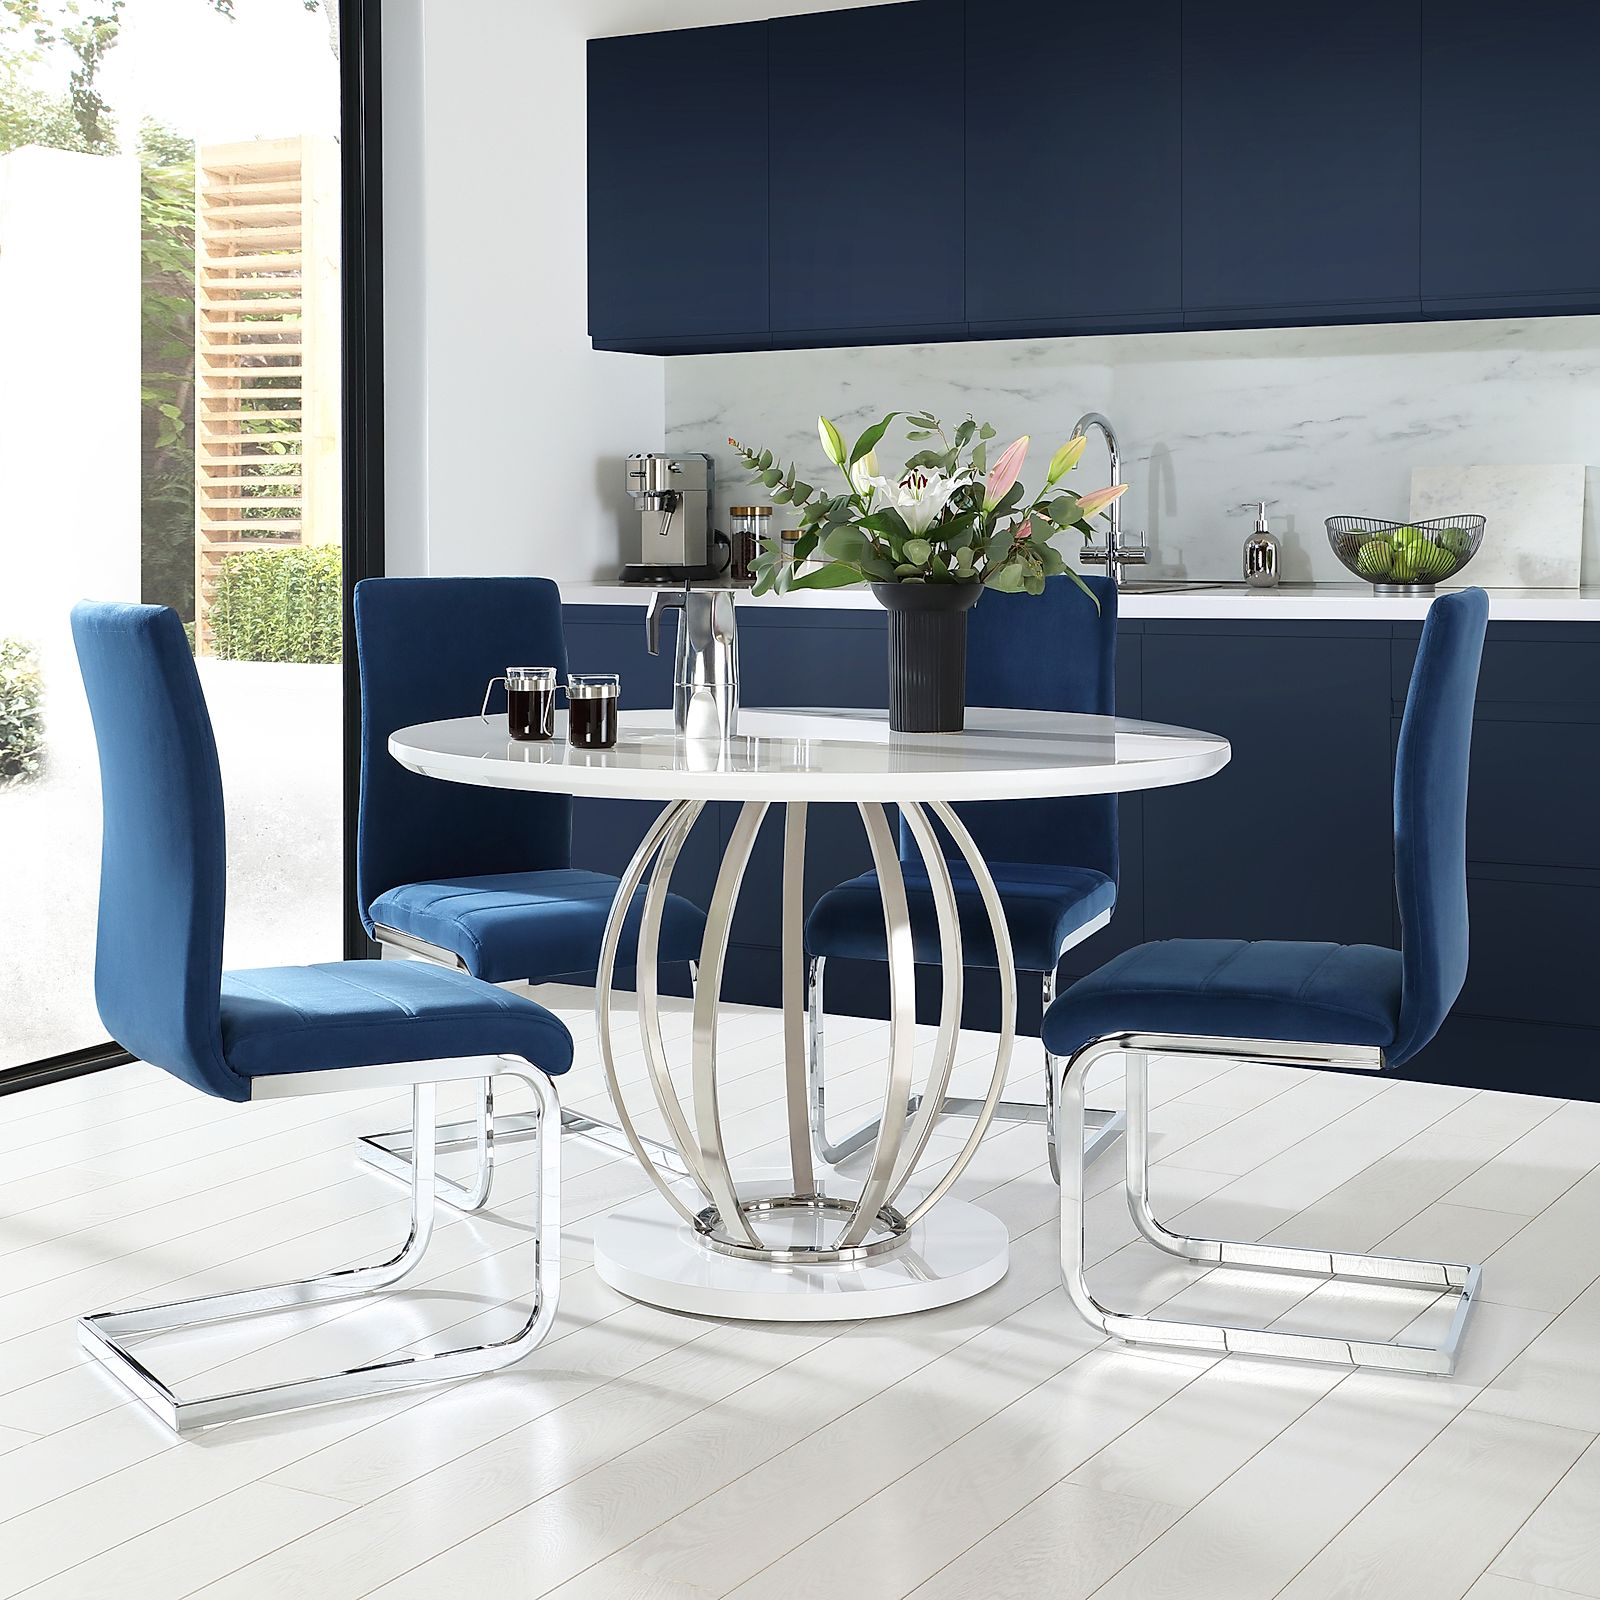 Enjoyable Details About Savoy Round White High Gloss Chrome Dining Table 4 Perth Blue Velvet Chairs Ncnpc Chair Design For Home Ncnpcorg